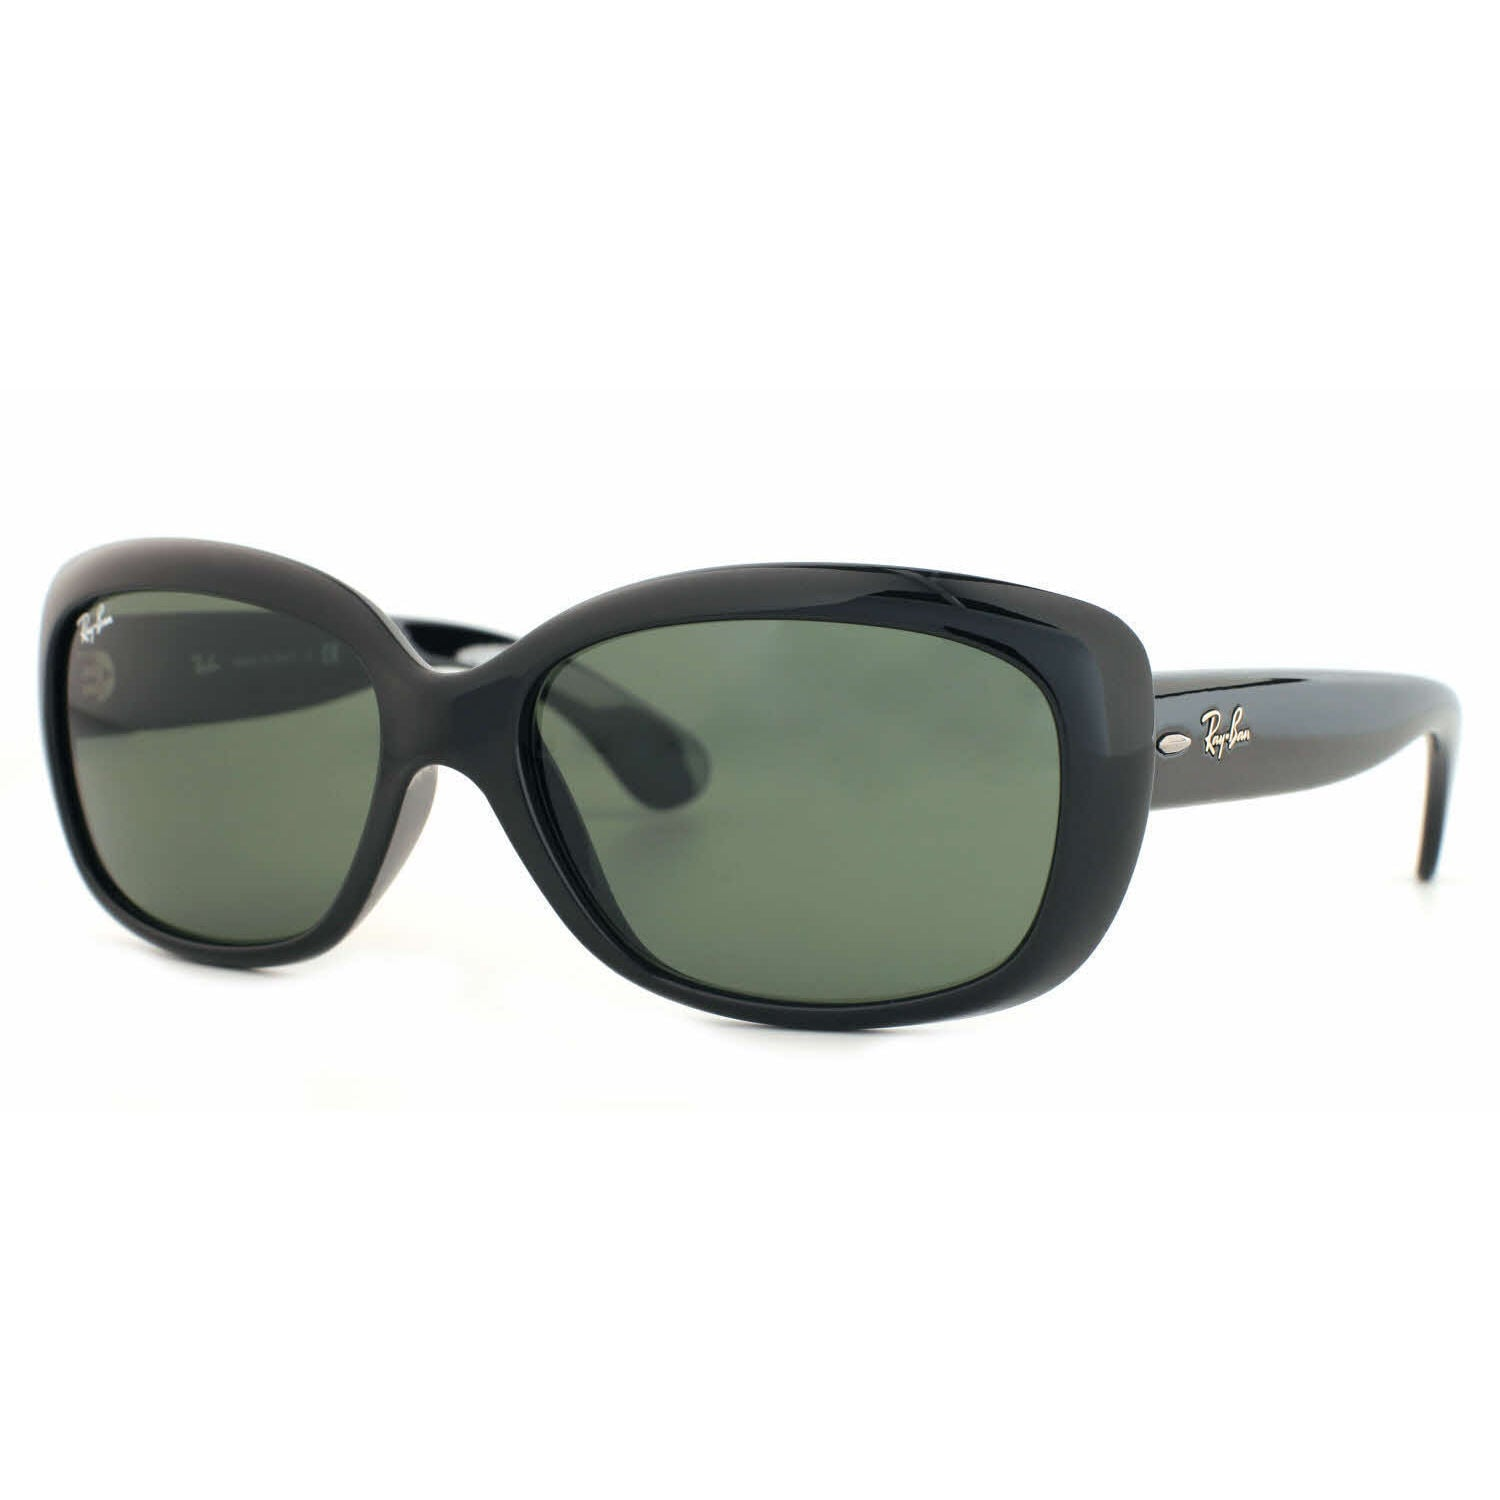 e2a6122f0c6 Ray-Ban Jackie Ohh RB4101 Women s Black Frame Green Lens Sunglasses